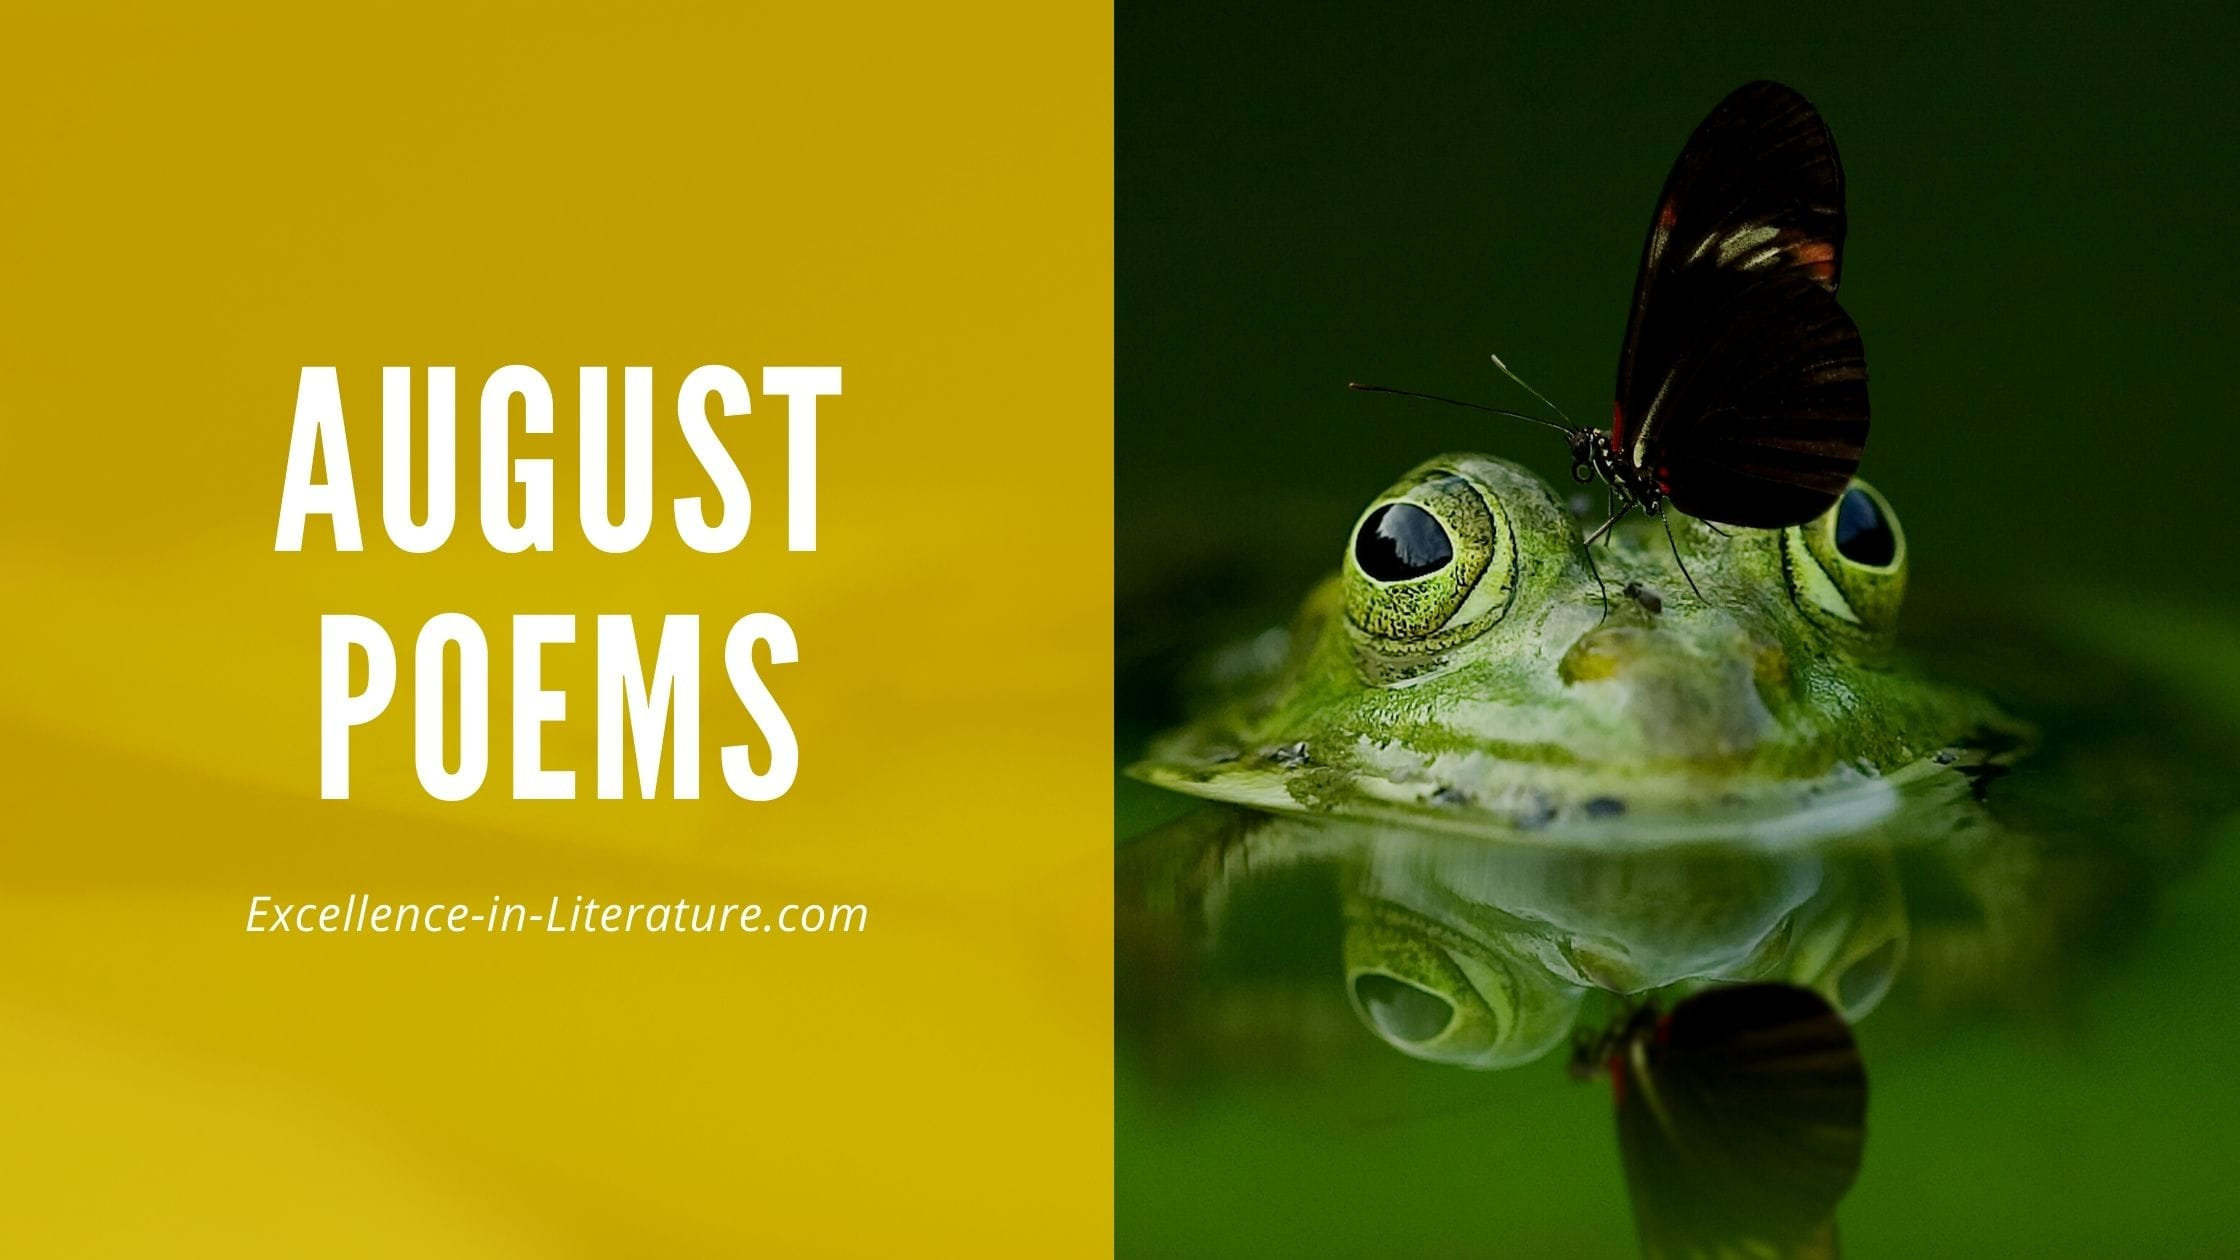 August Poems